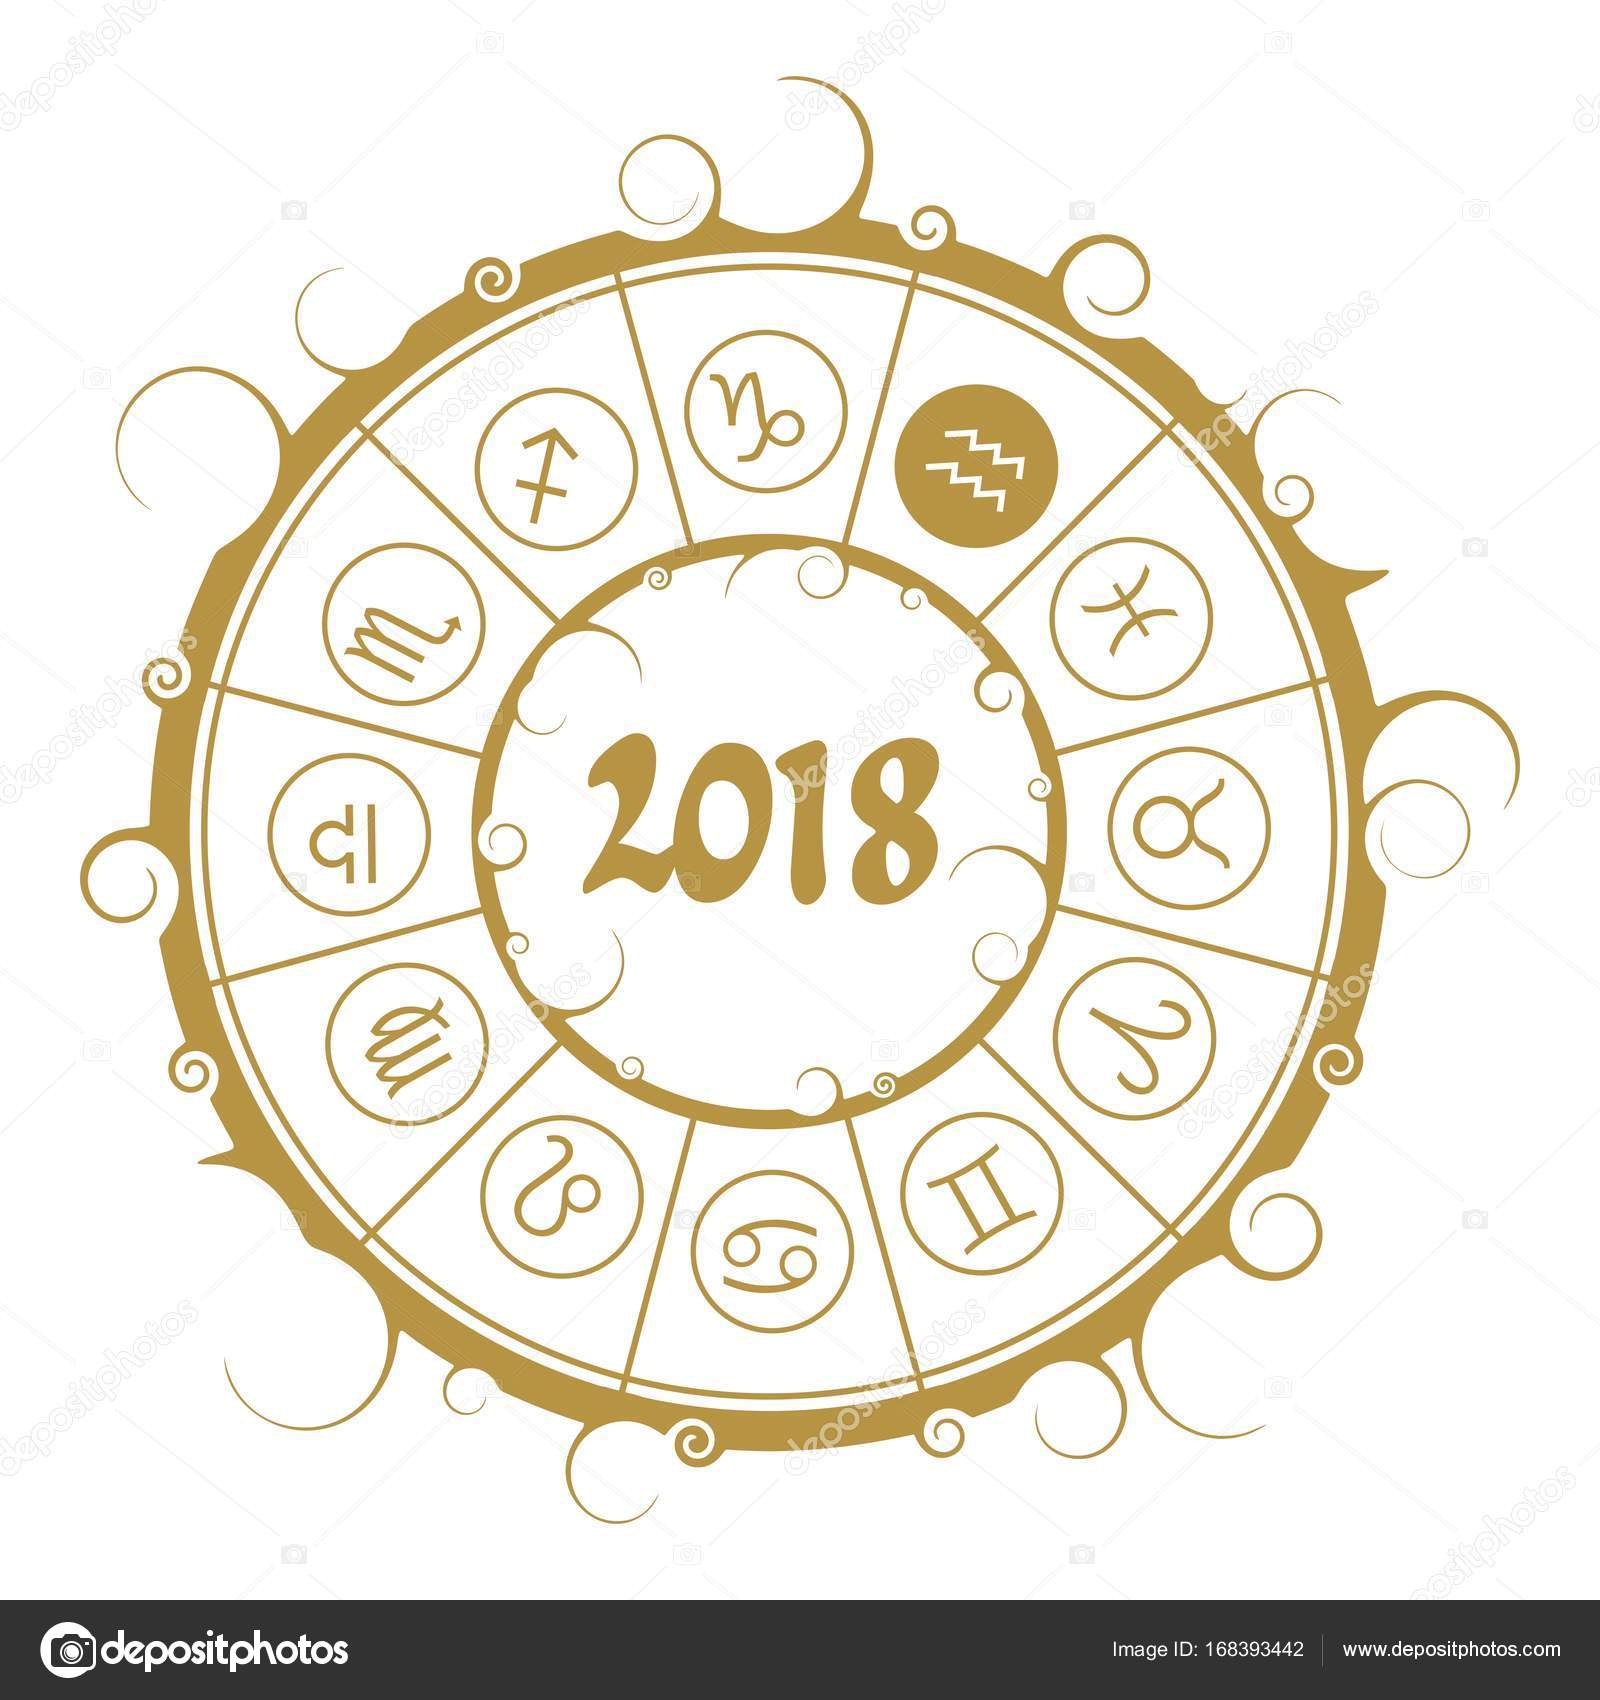 Astrology symbols in circle water bearer sign stock vector astrological symbols in the circle water bearer sign new year and christmas celebration card template zodiac circle with 2018 new year number biocorpaavc Choice Image